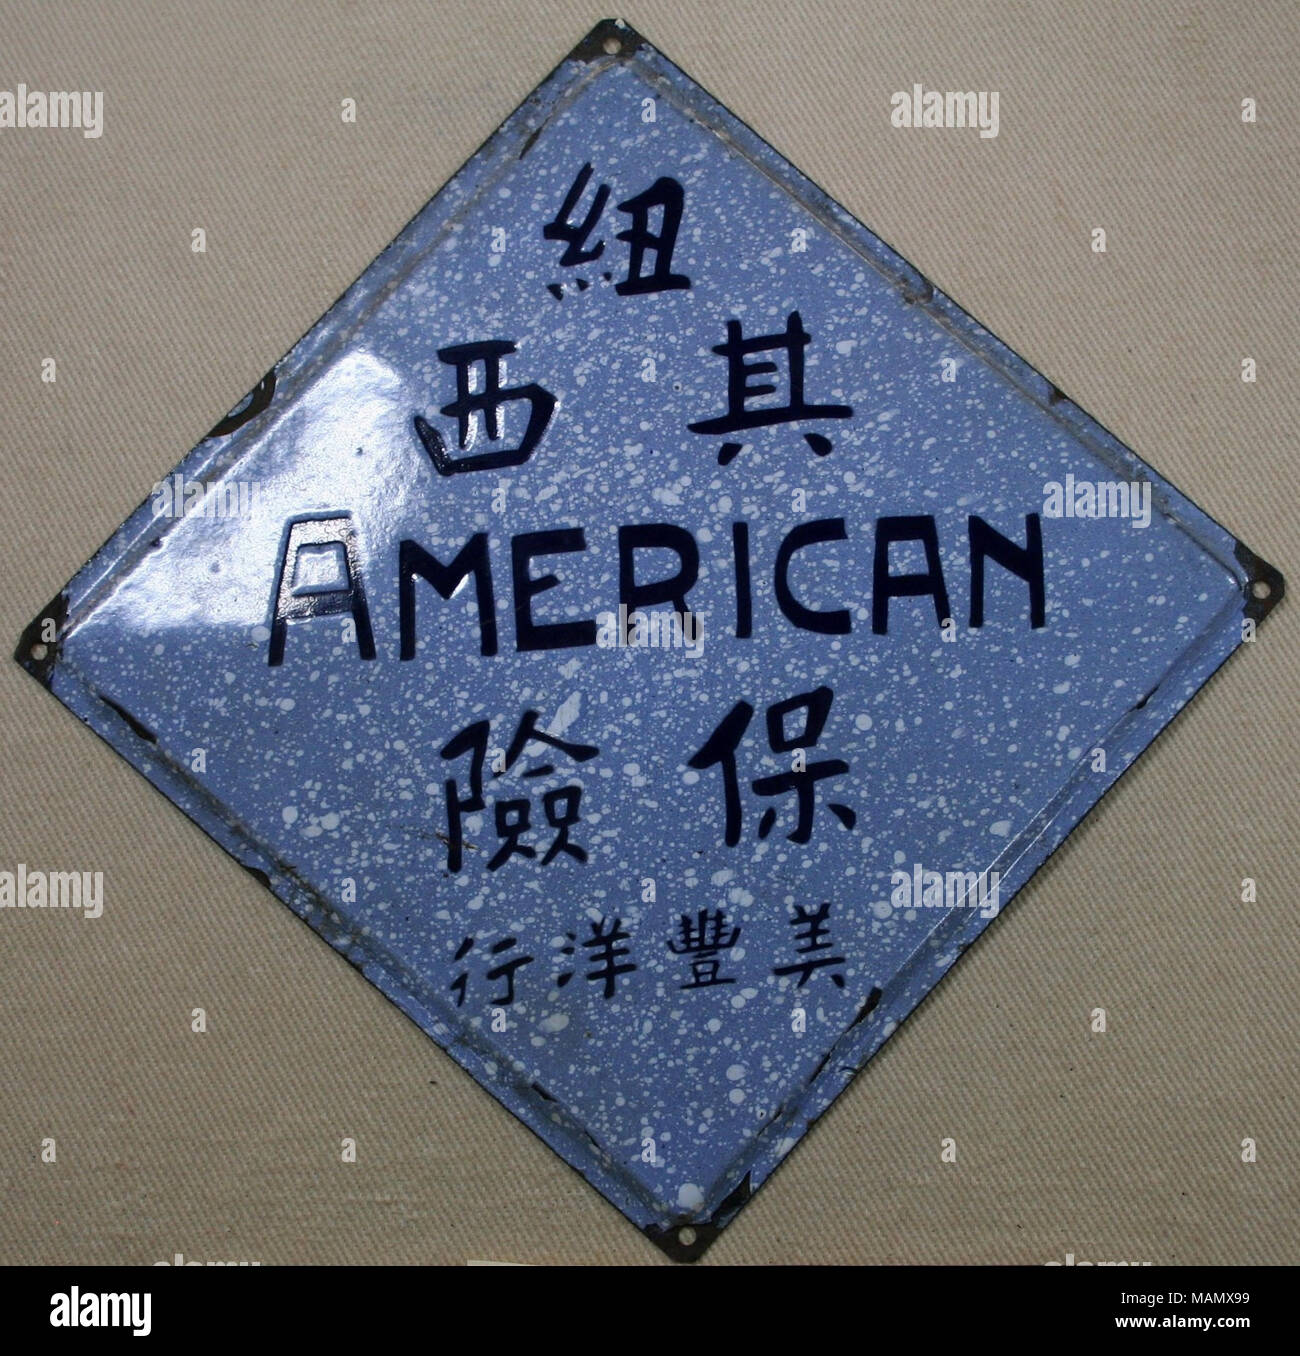 Enameled Tin Fire Mark For American Insurance Company In Newark New Jersey Showing Company Name And Chinese Characters Painted On Speckled Light Blue Background Title Fire Mark For American Insurance Company In